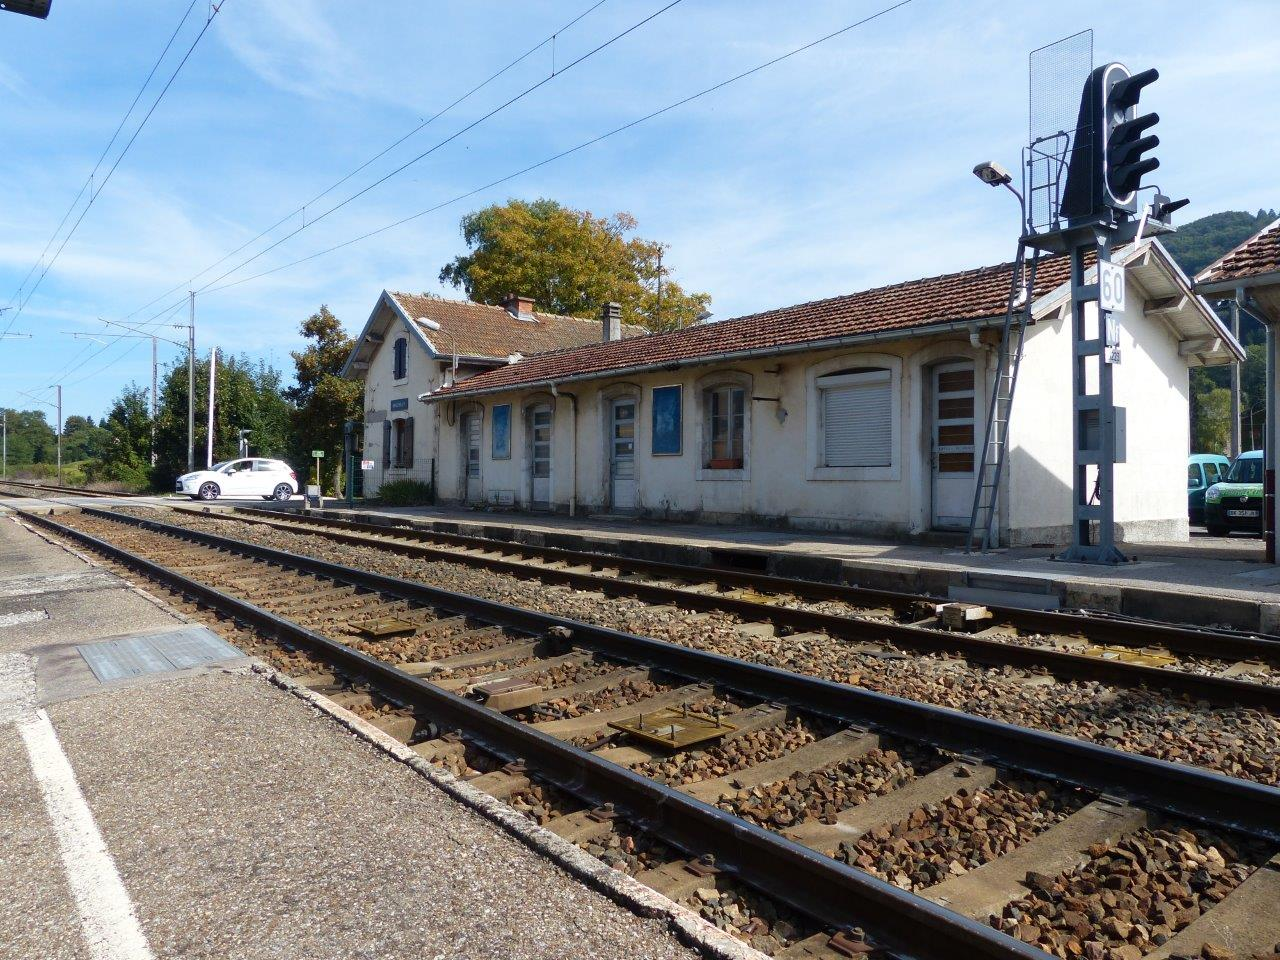 gare-de-machilly-train-station